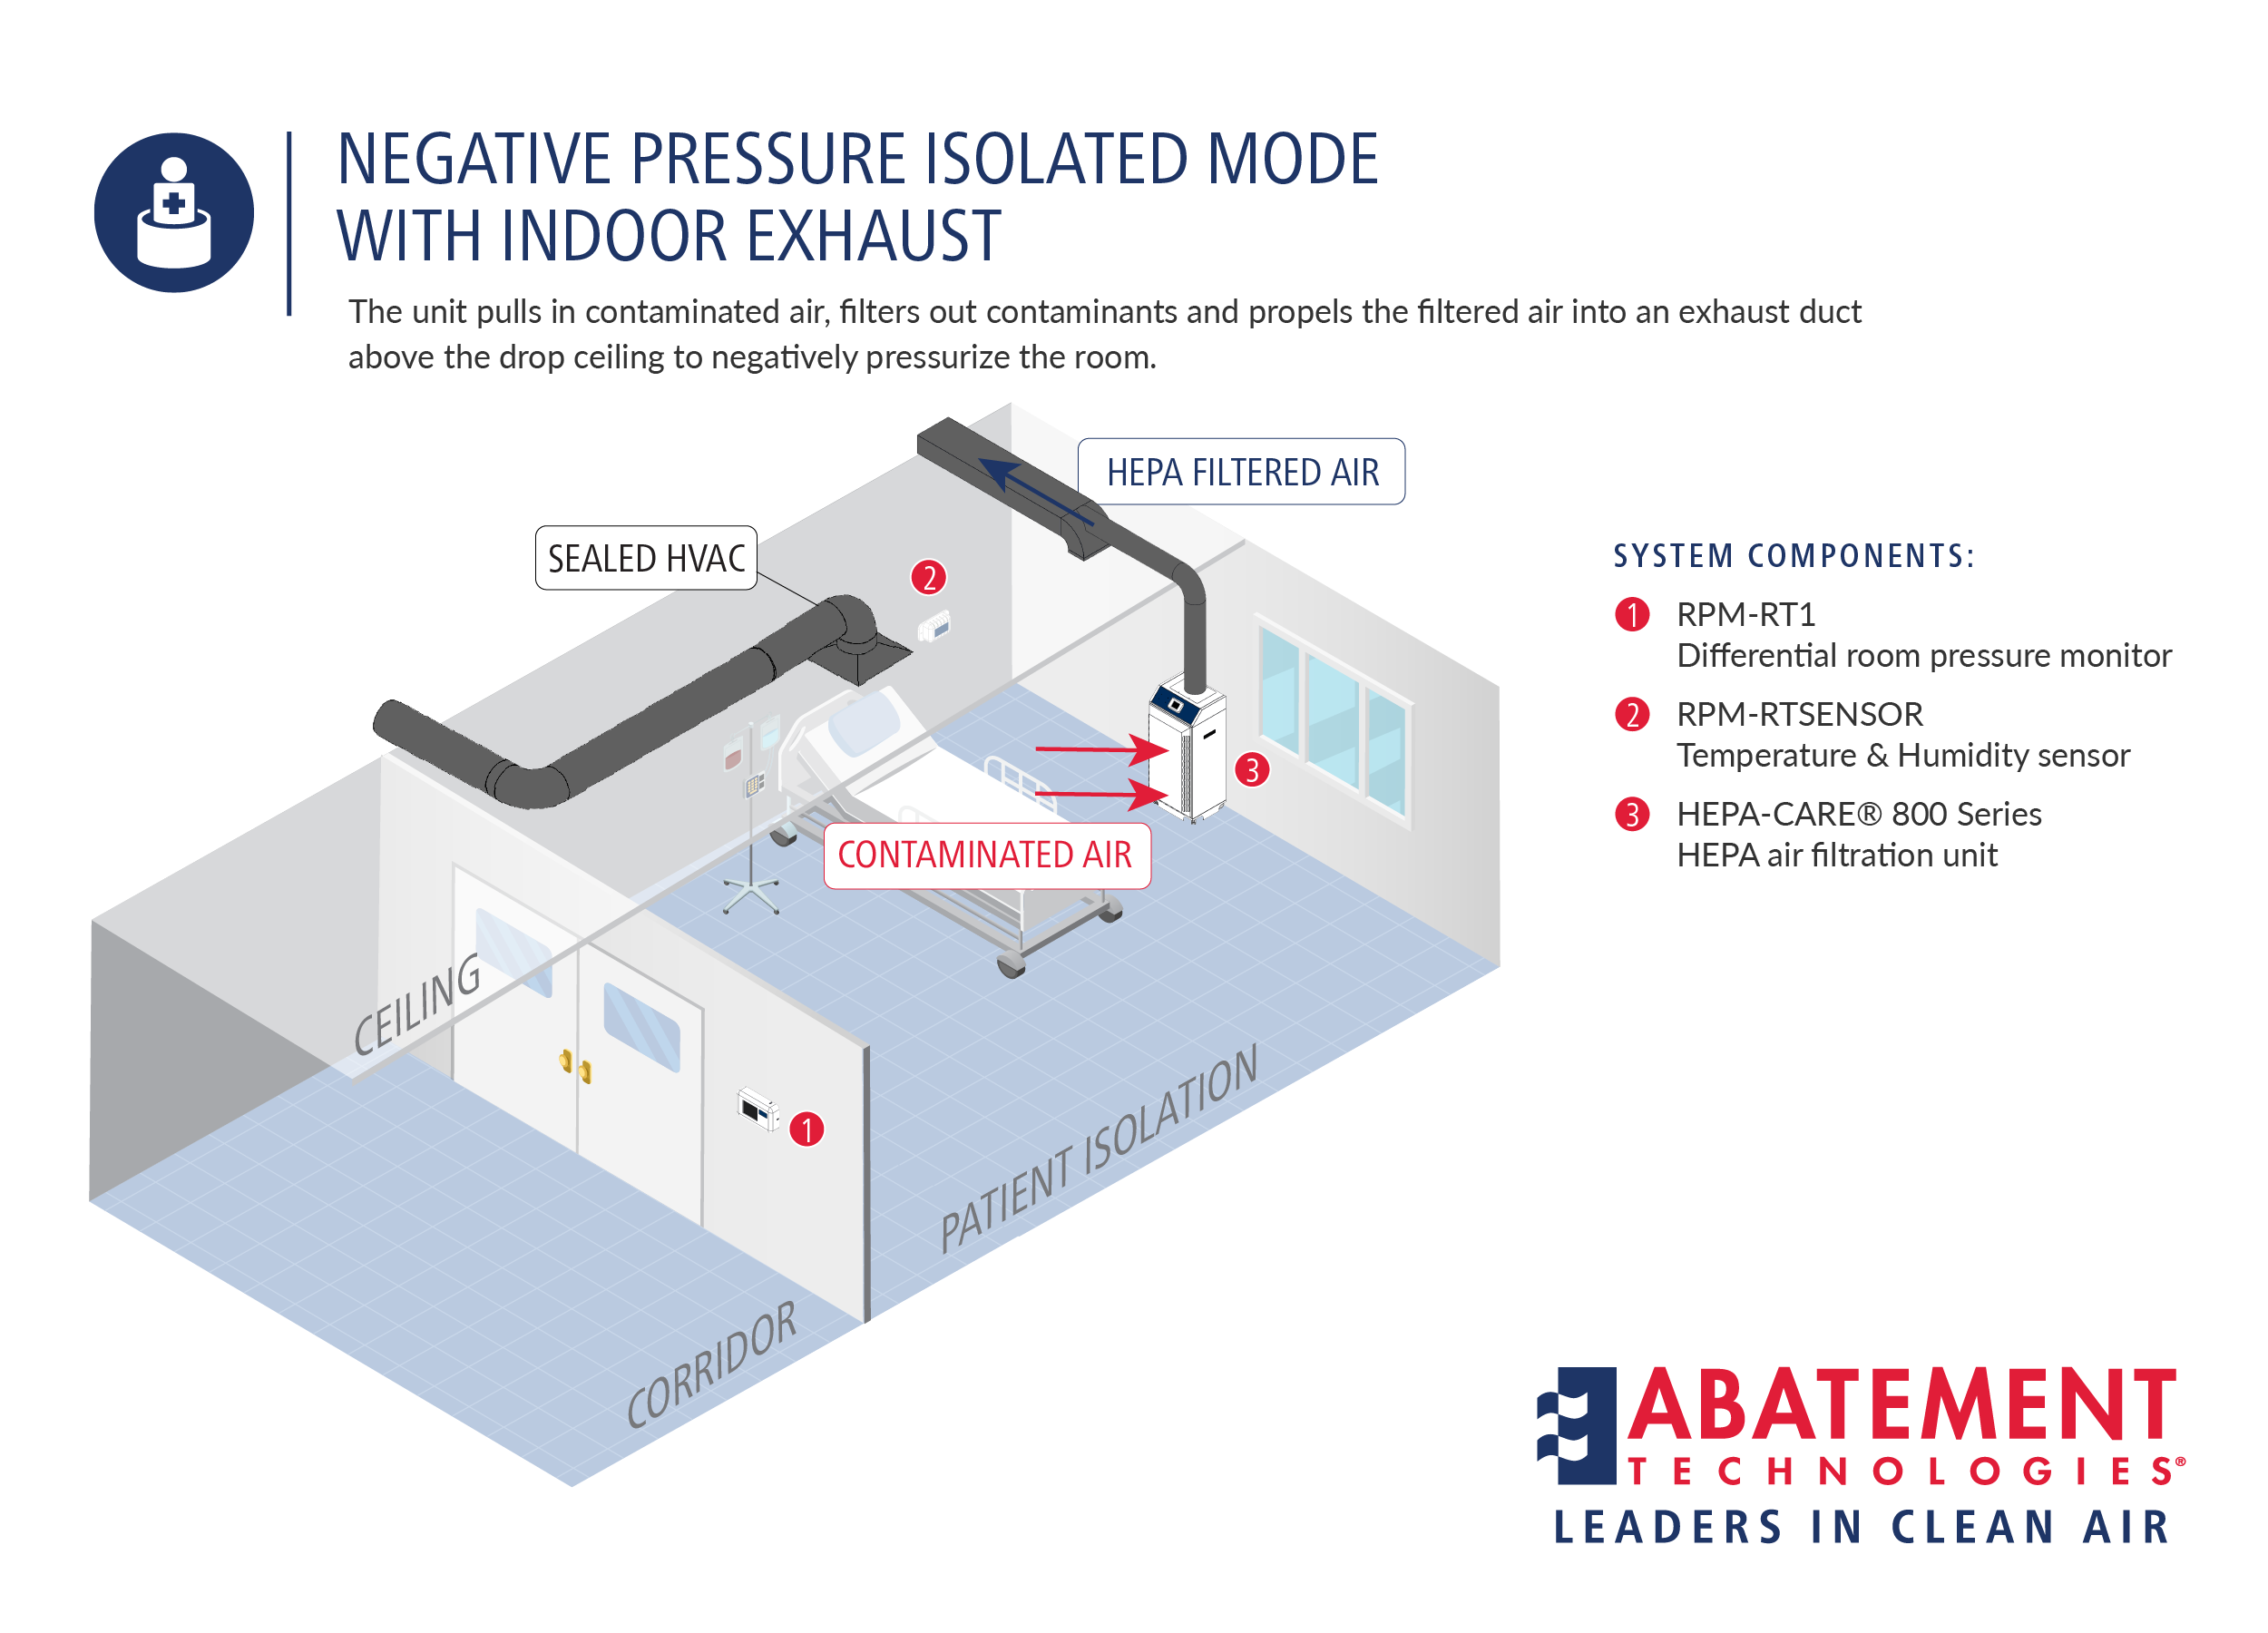 Negative Pressure Isolated Mode with UV Module and Indoor Exhaust